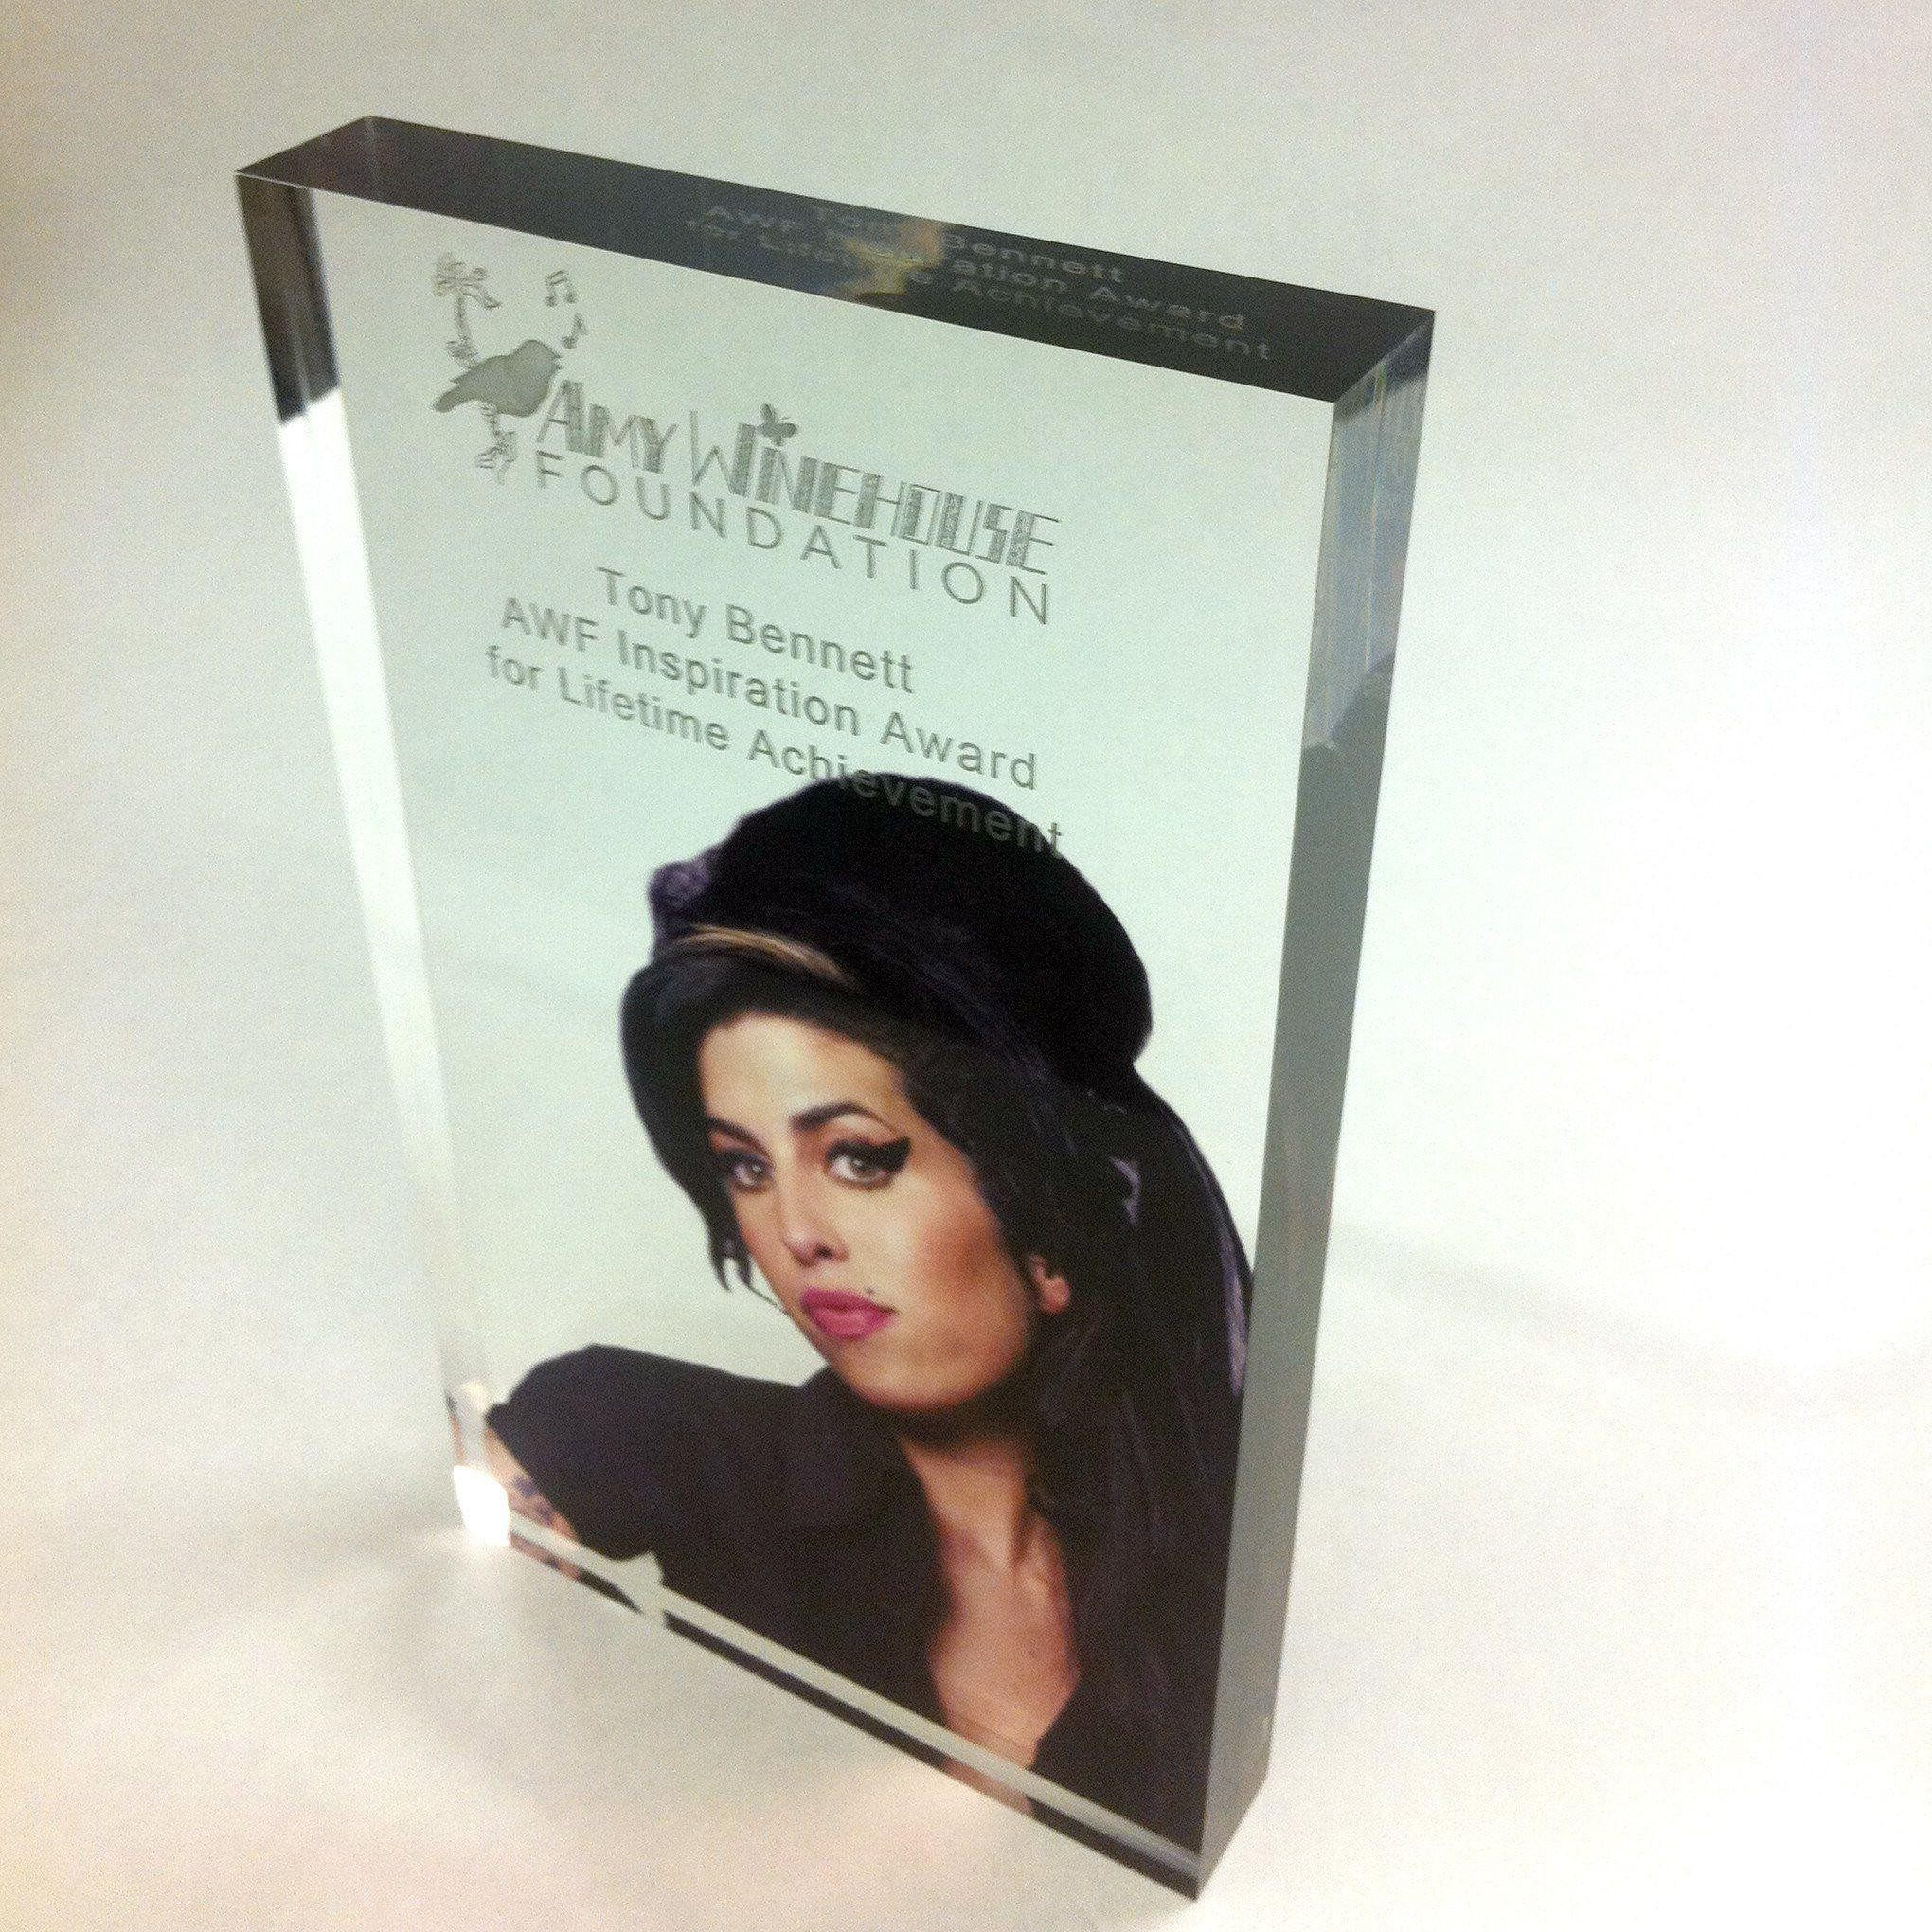 Amy Winehouse Foundation Acrylic Award Bespoke Acrylic Awards Creative Awards